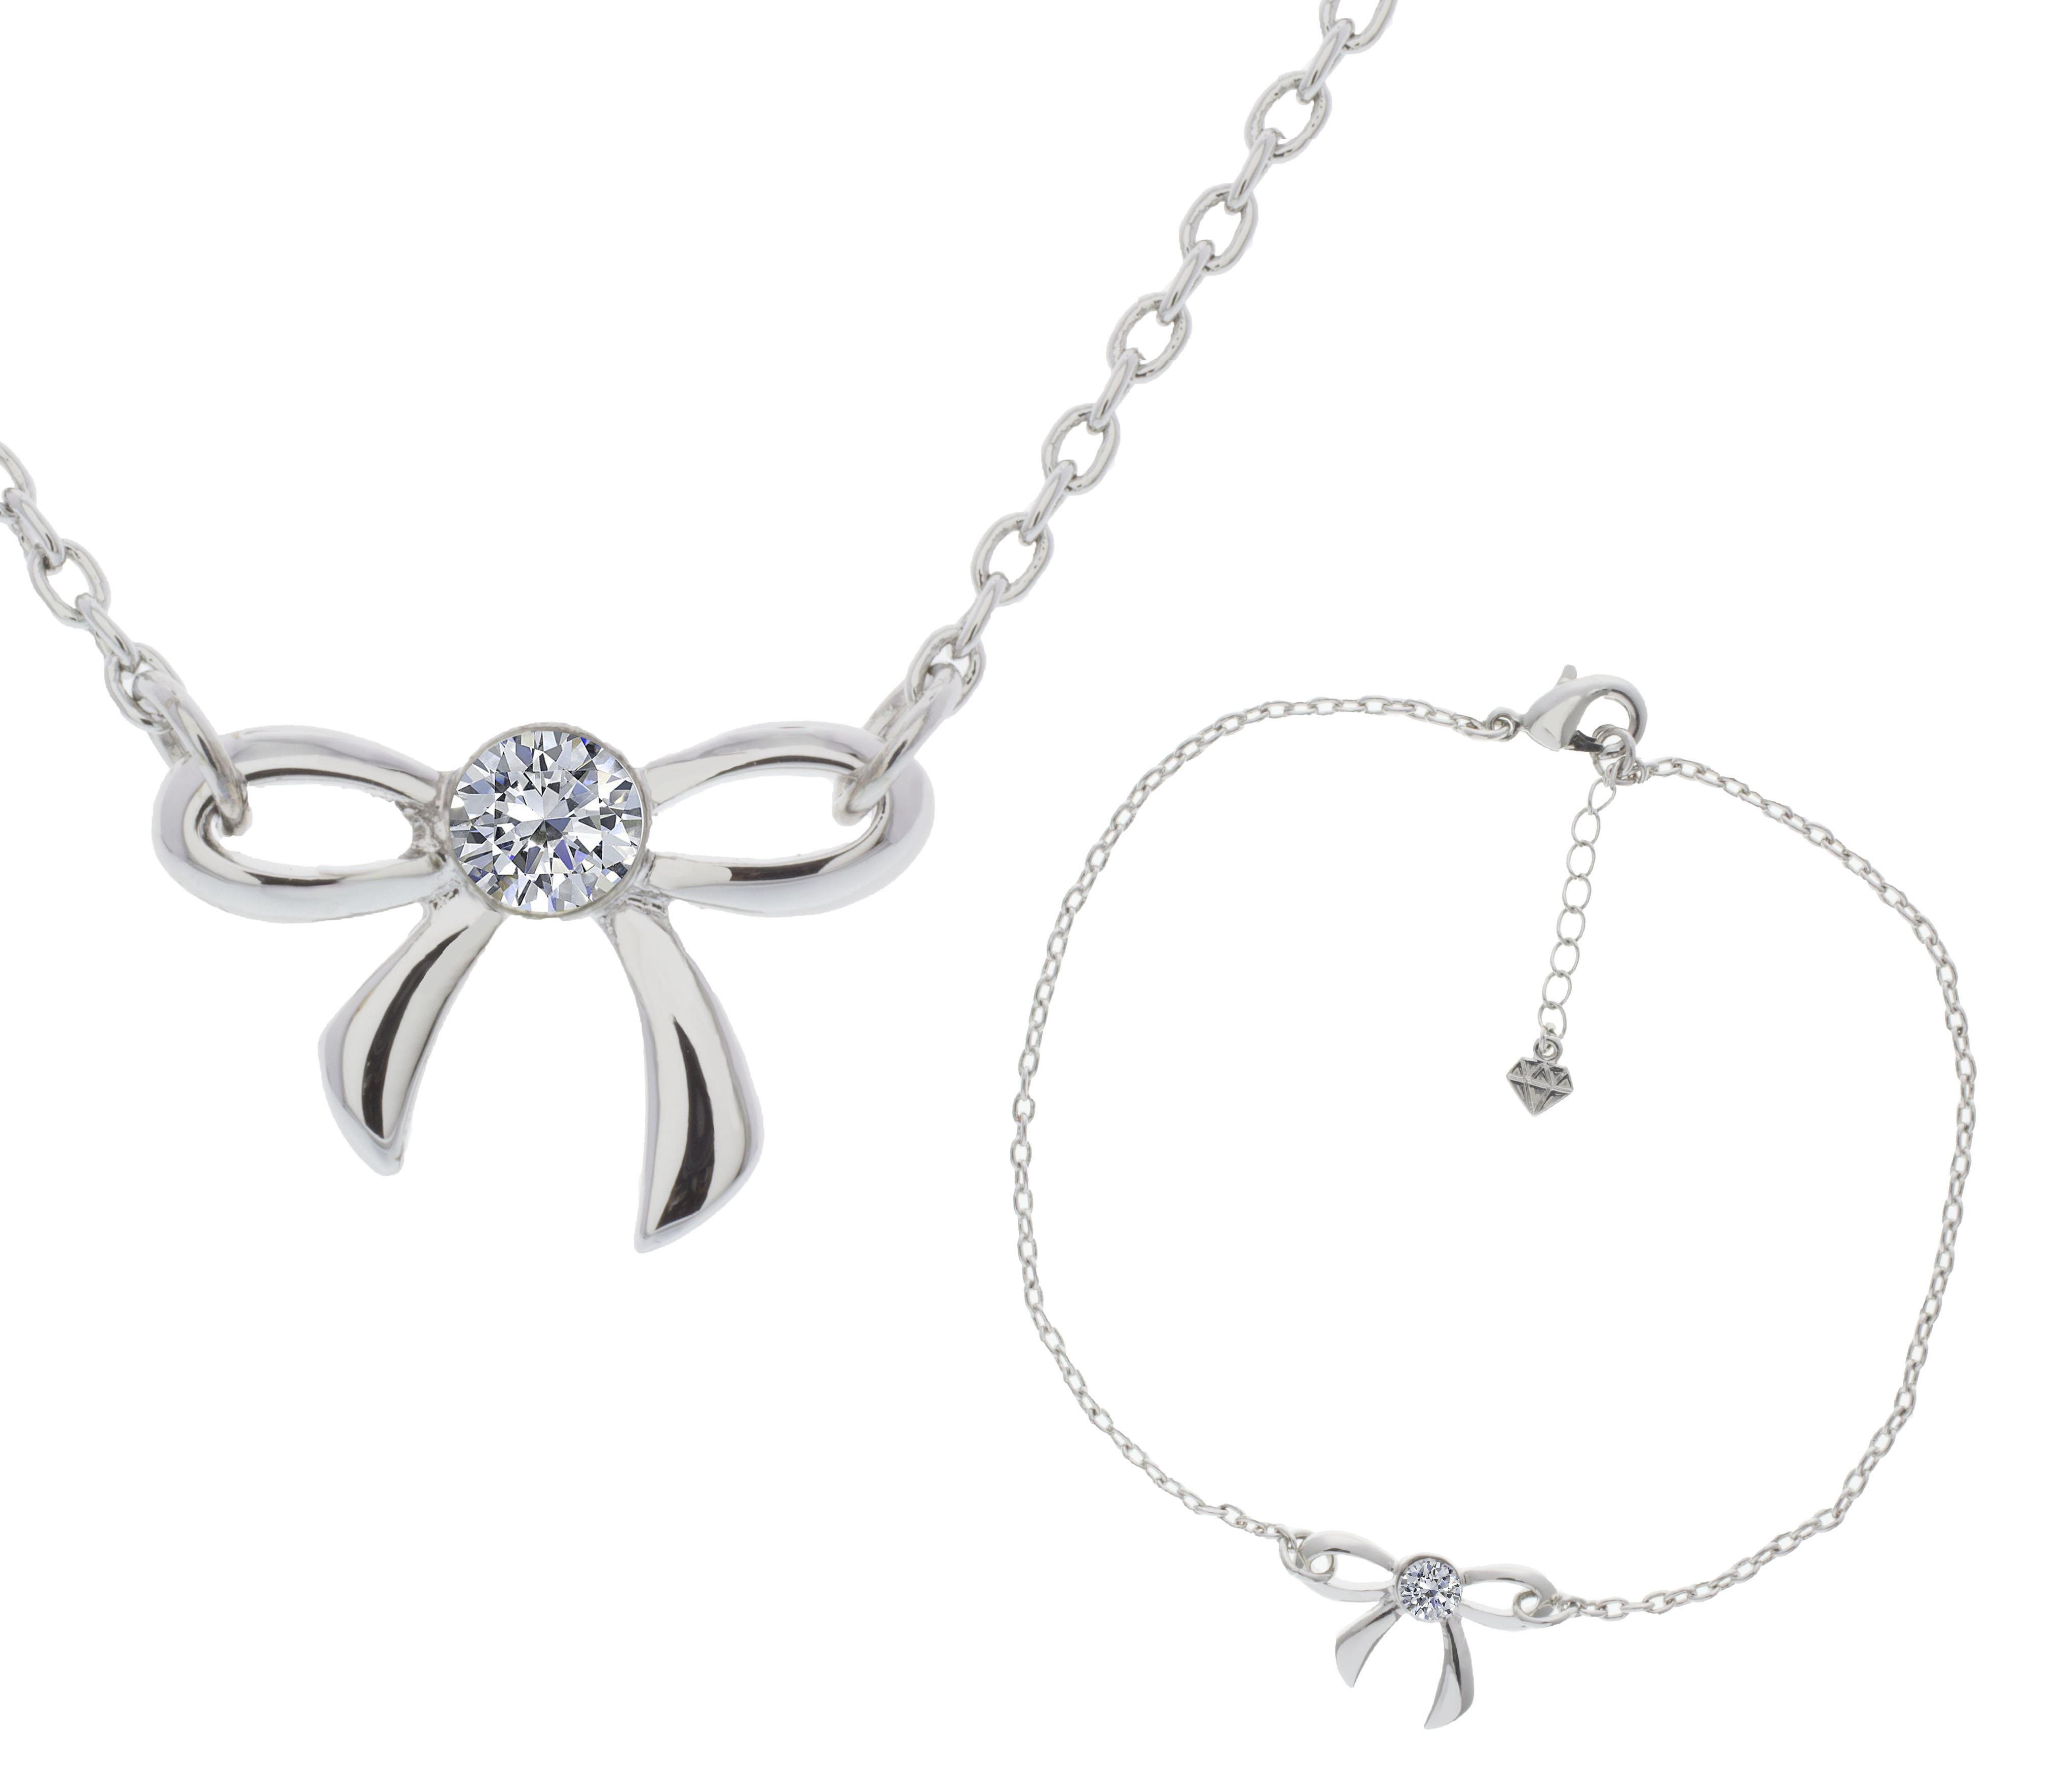 Bow Pendant and Anklet, Made with Swarovski Elements